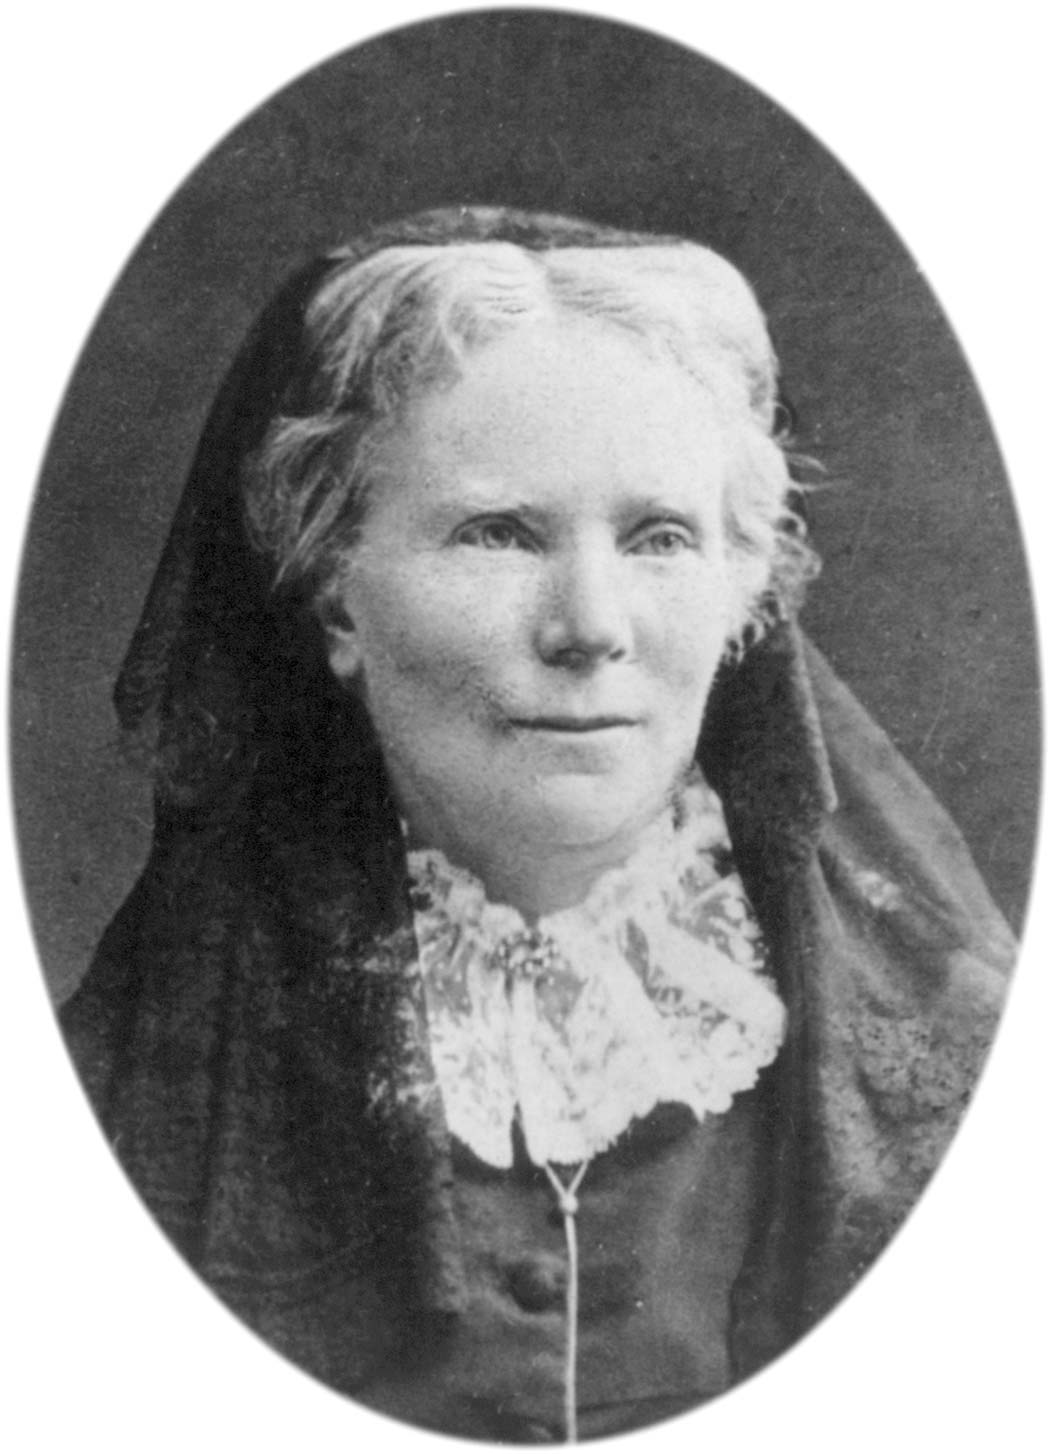 portrait of Elizabeth Blackwell, first American woman doctor